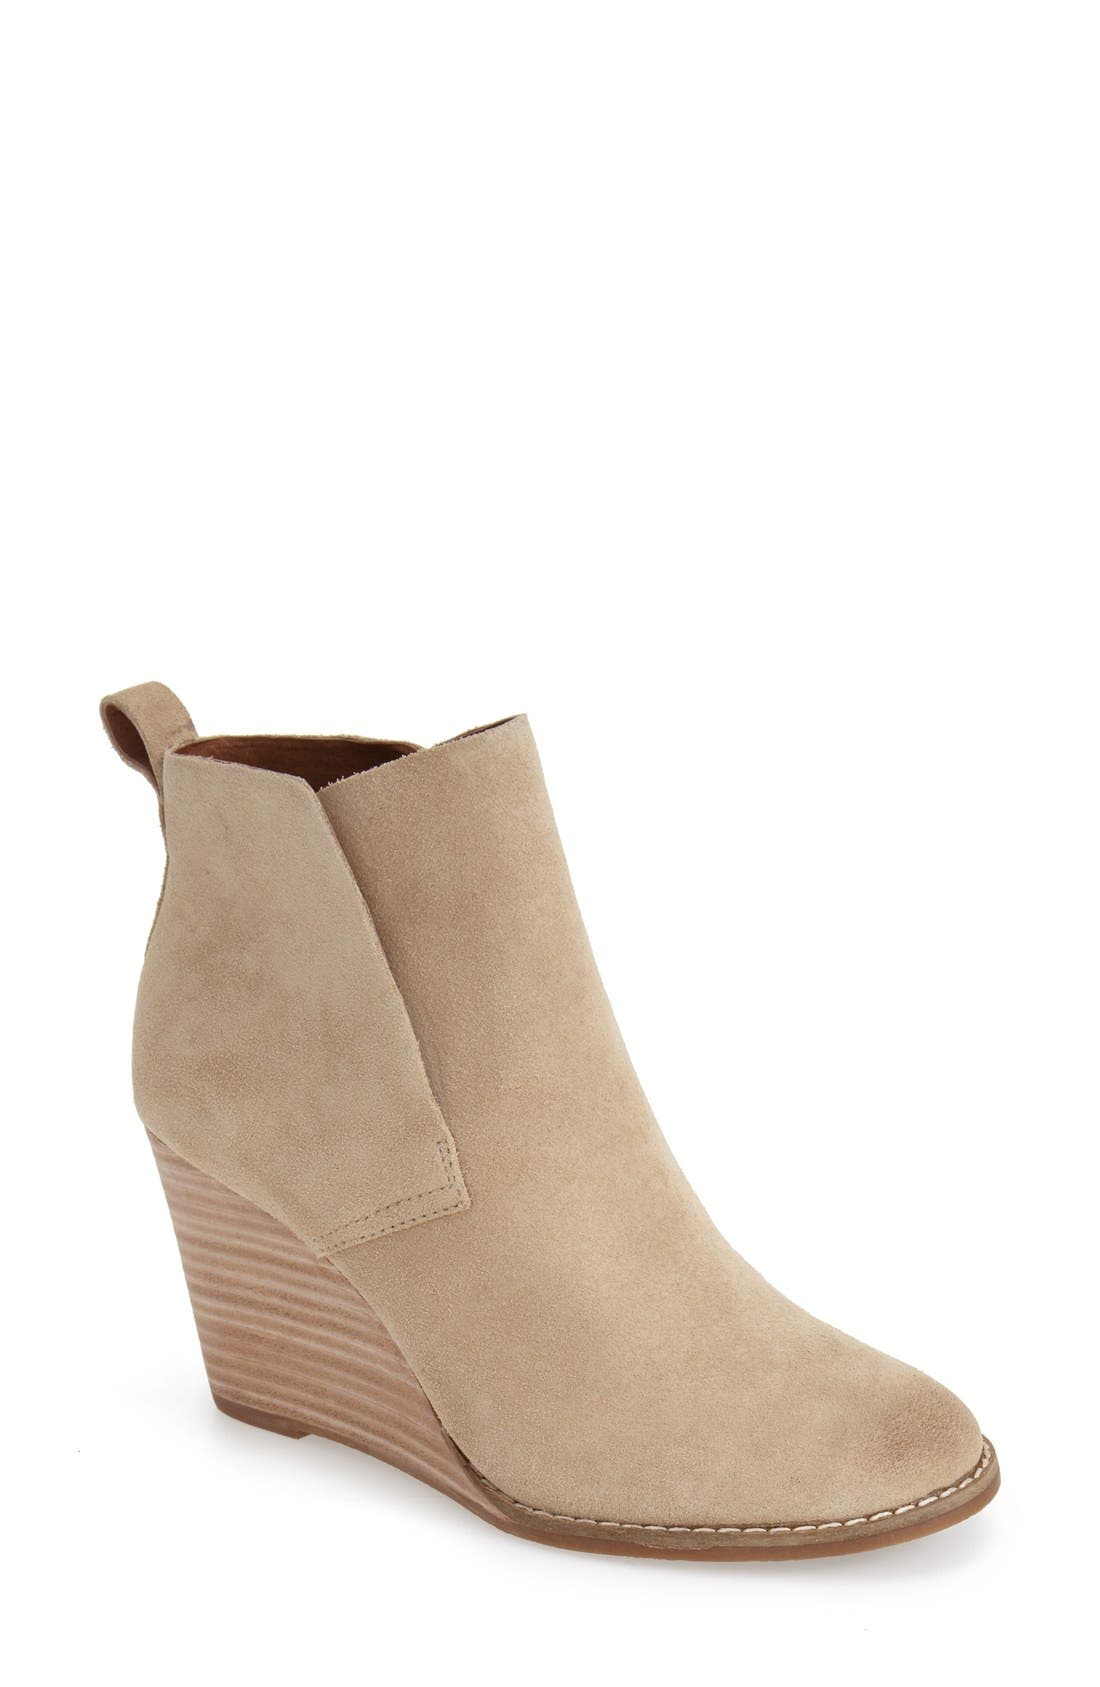 Main Image - Lucky Brand 'Yoniana' Wedge Bootie (Women)